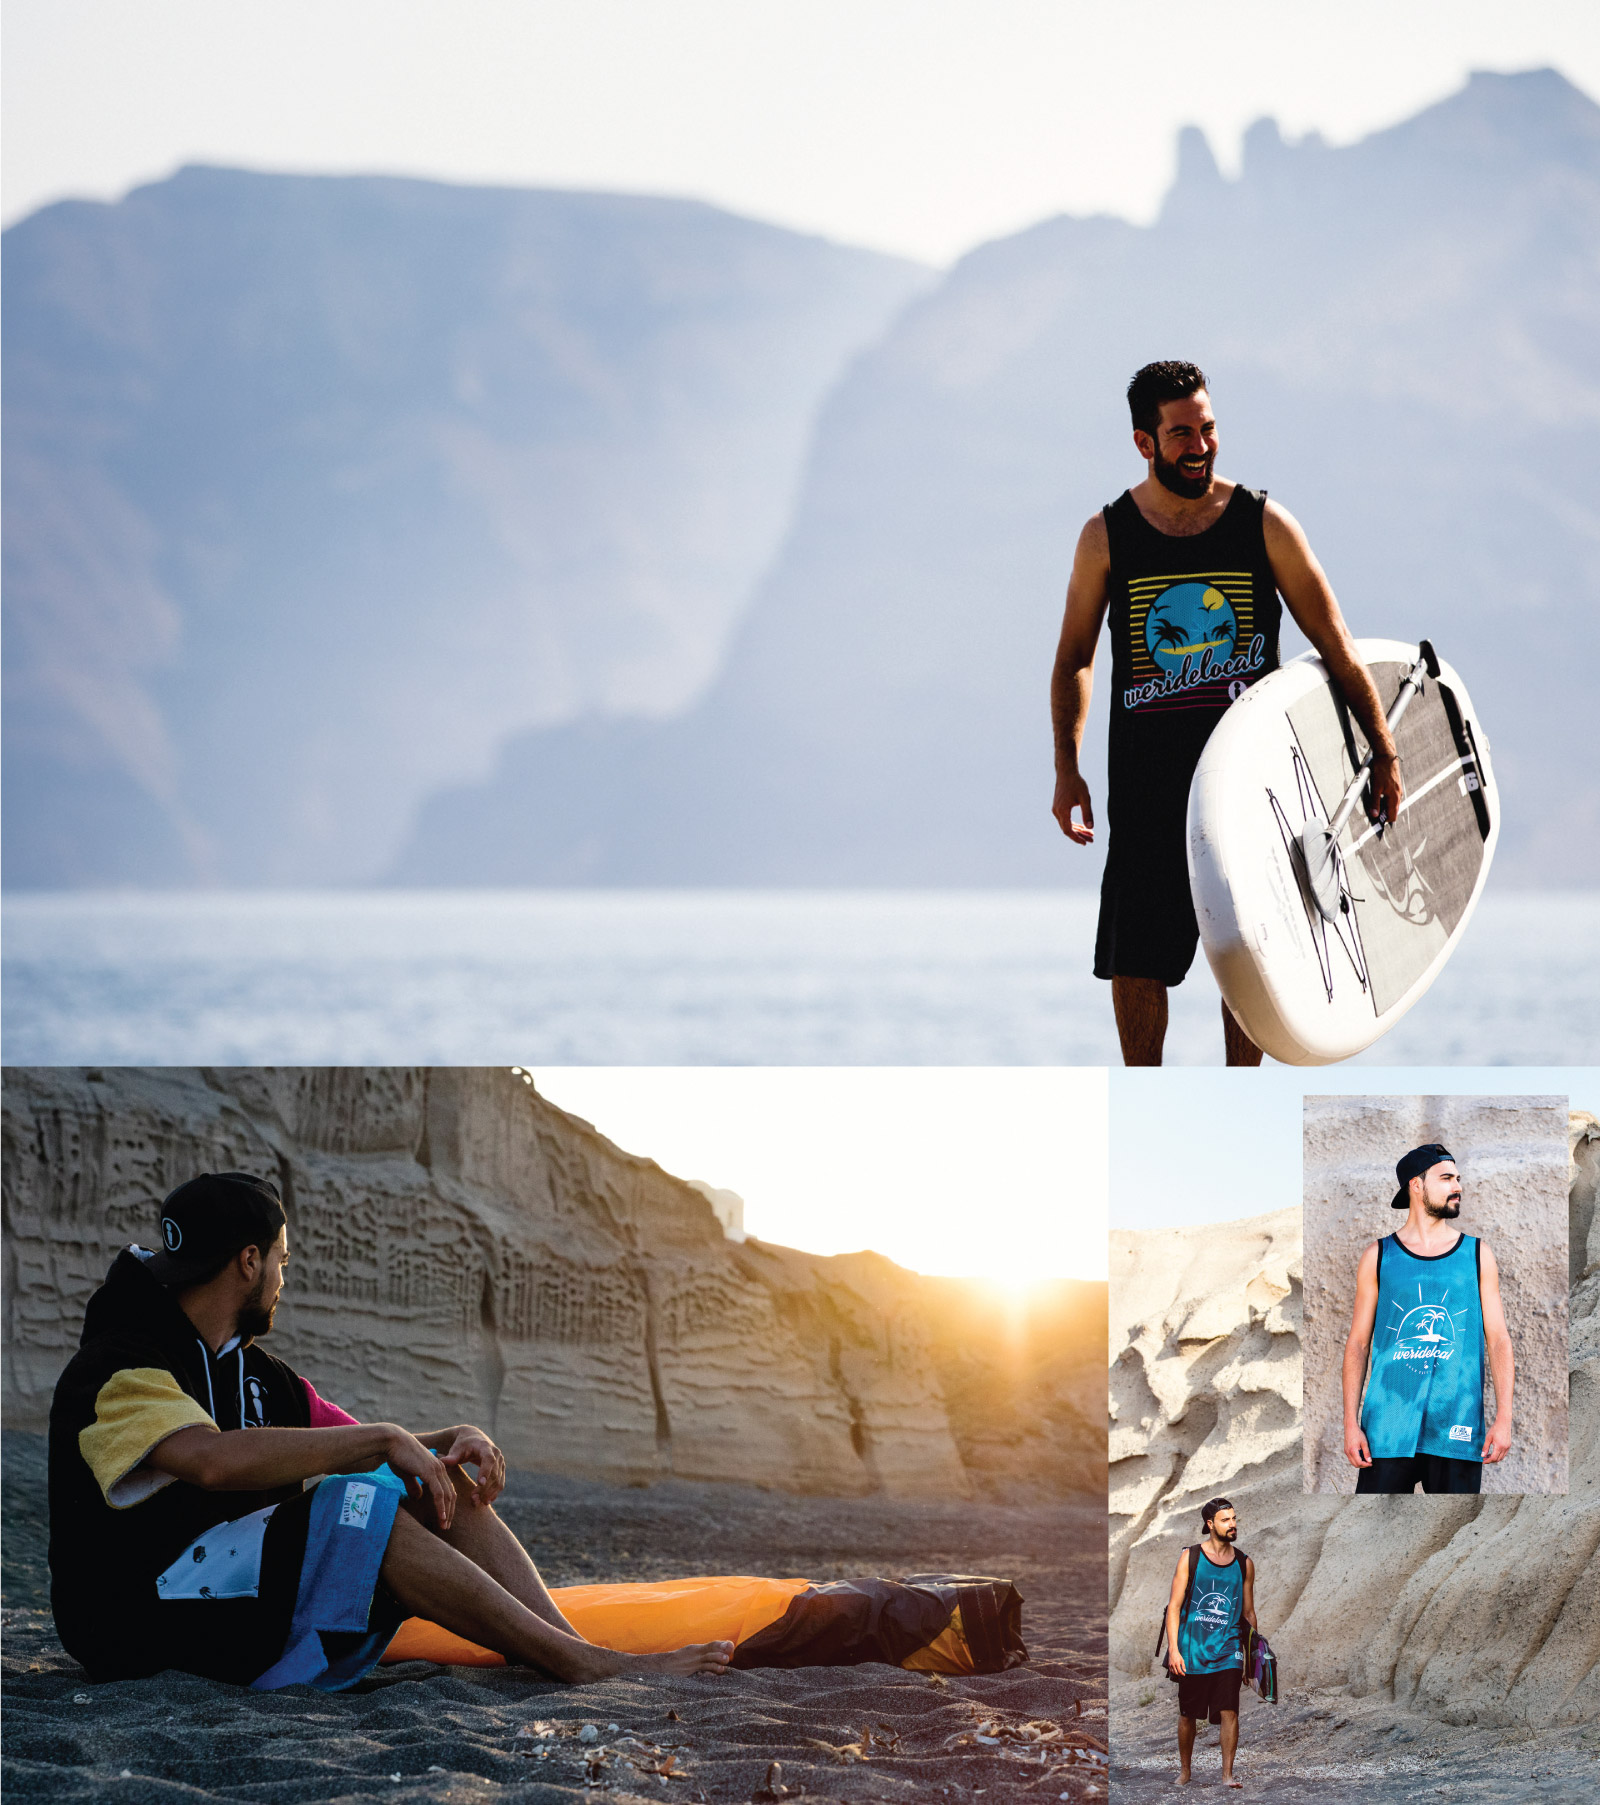 WWW.WERIDELOCAL.COM-MEN-PONCHO-TOWEL-COTTON-JERSEY-RASH-VEST-QUICKDRY-BASKET-STYLE